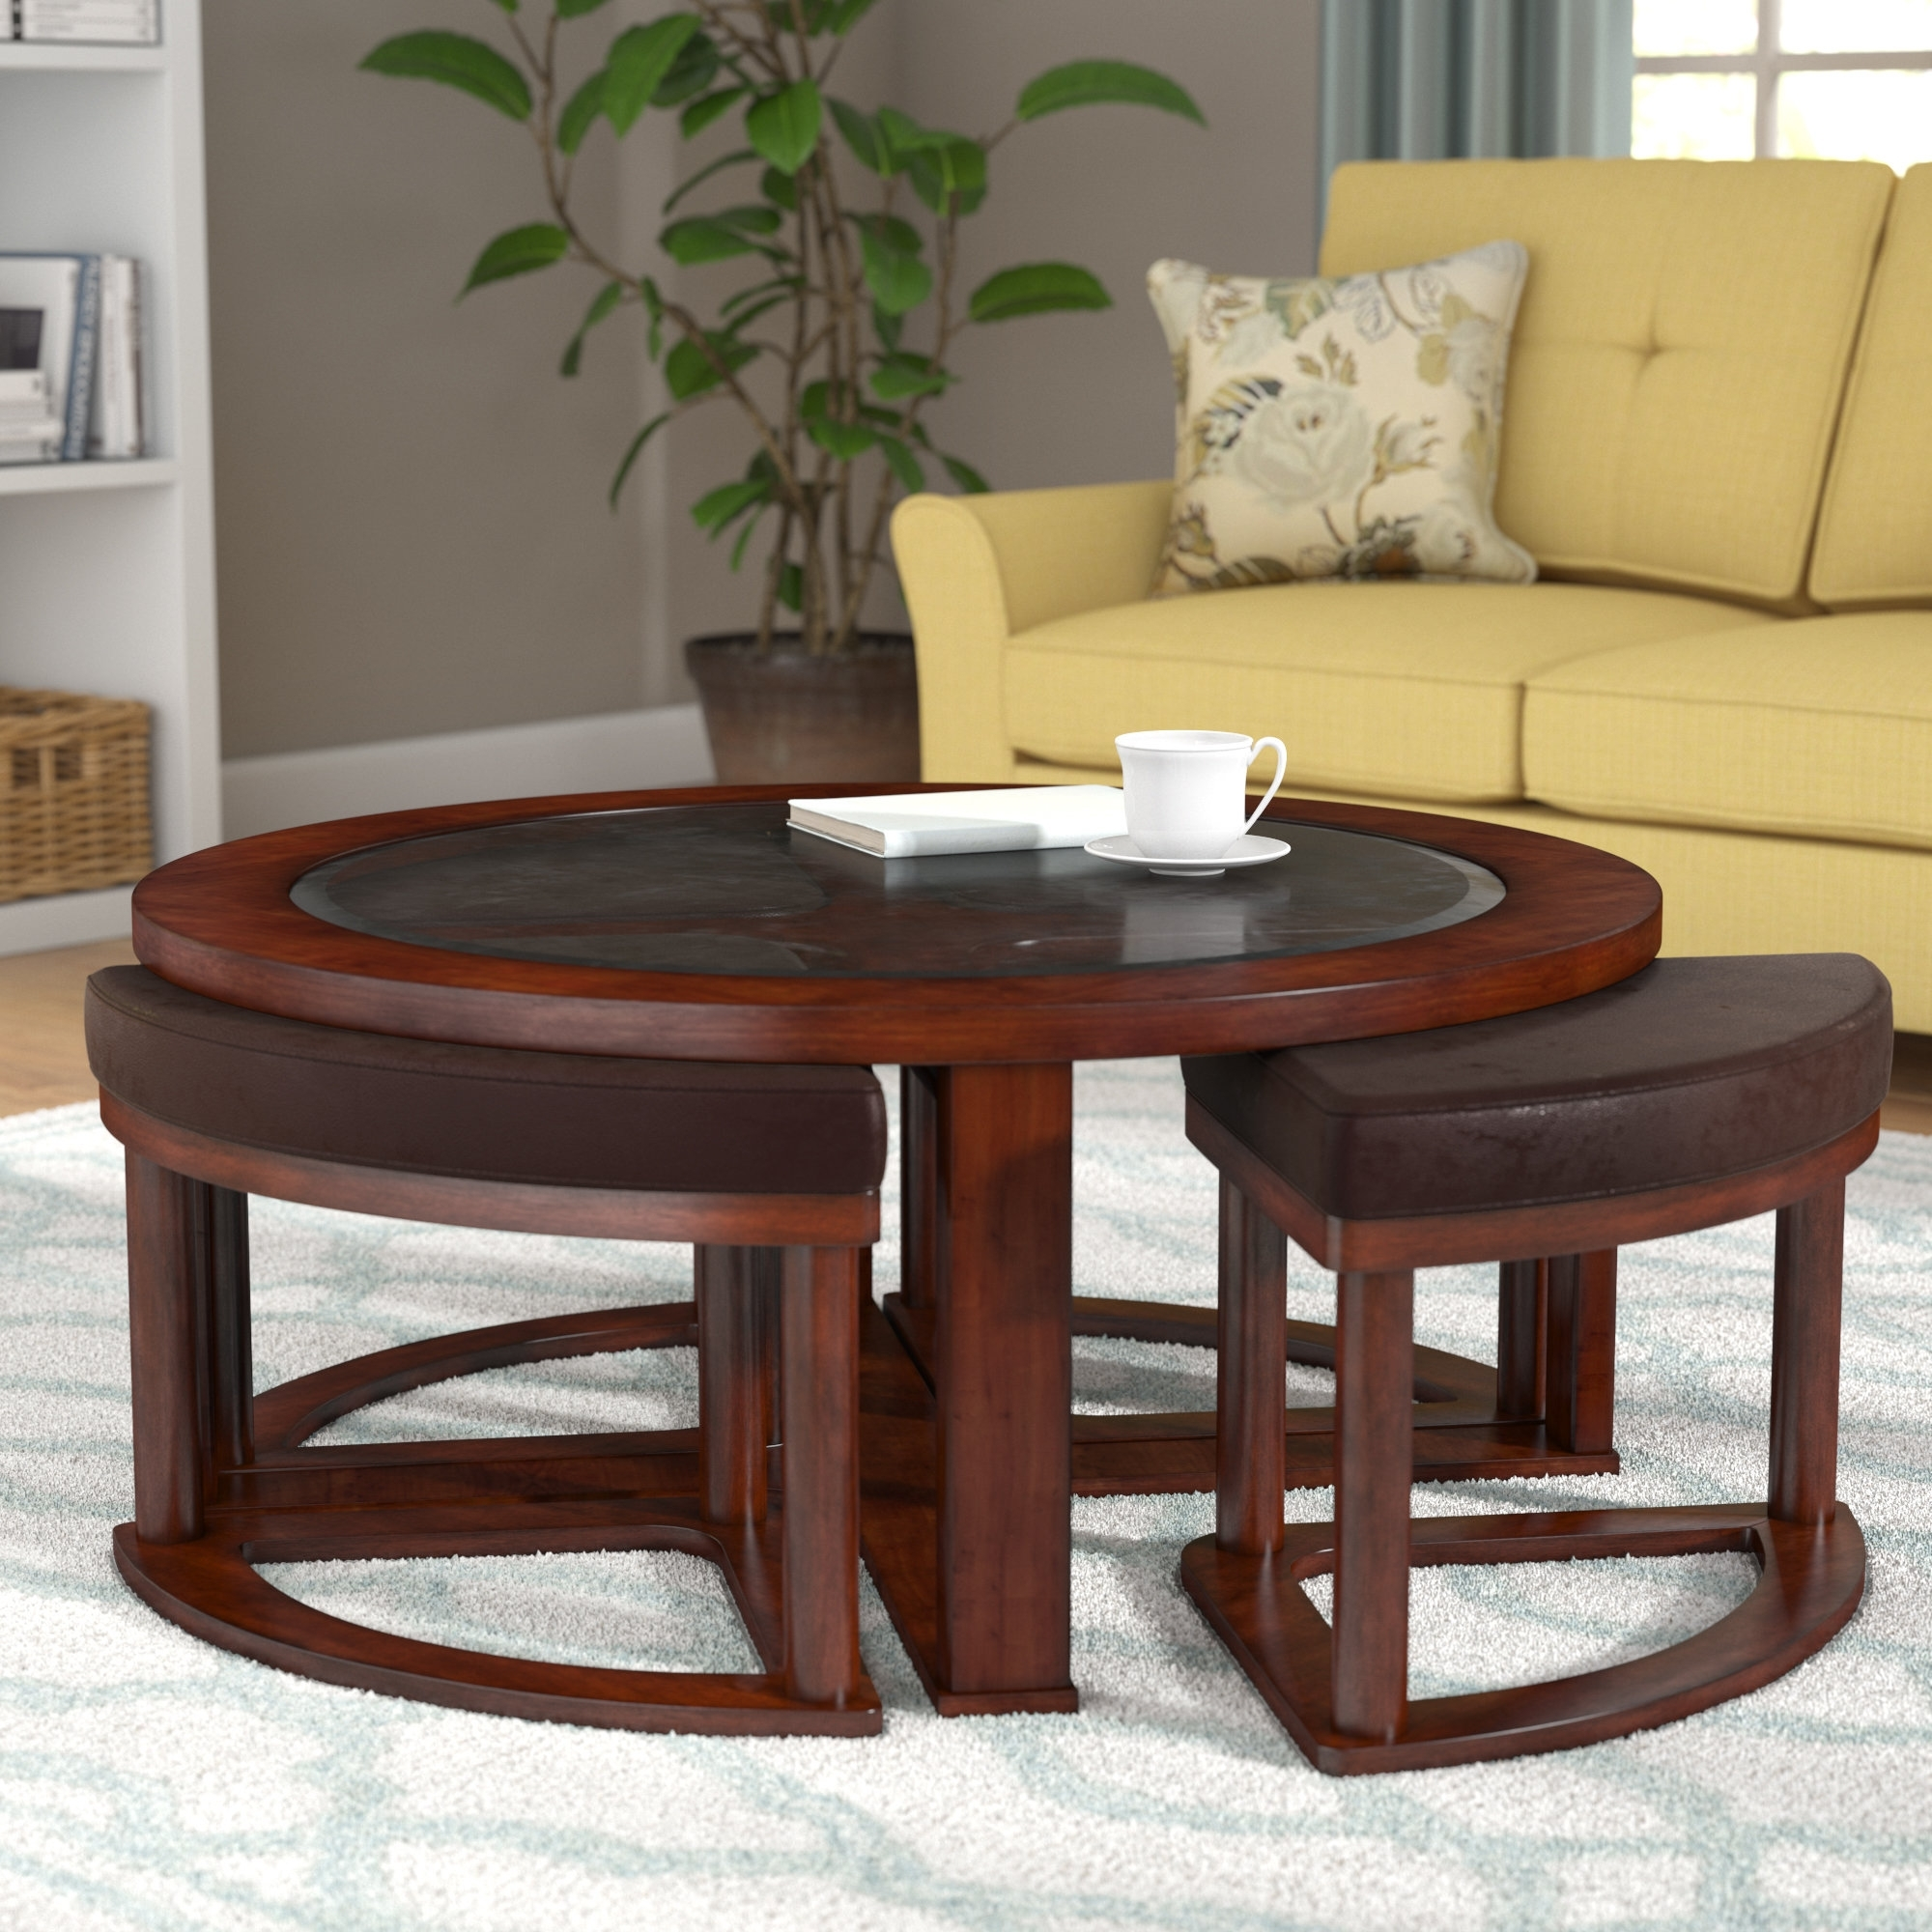 Darby Home Co Eastin Coffee Table With Nested Stools & Reviews | Wayfair with Mill Large Leather Coffee Tables (Image 14 of 30)